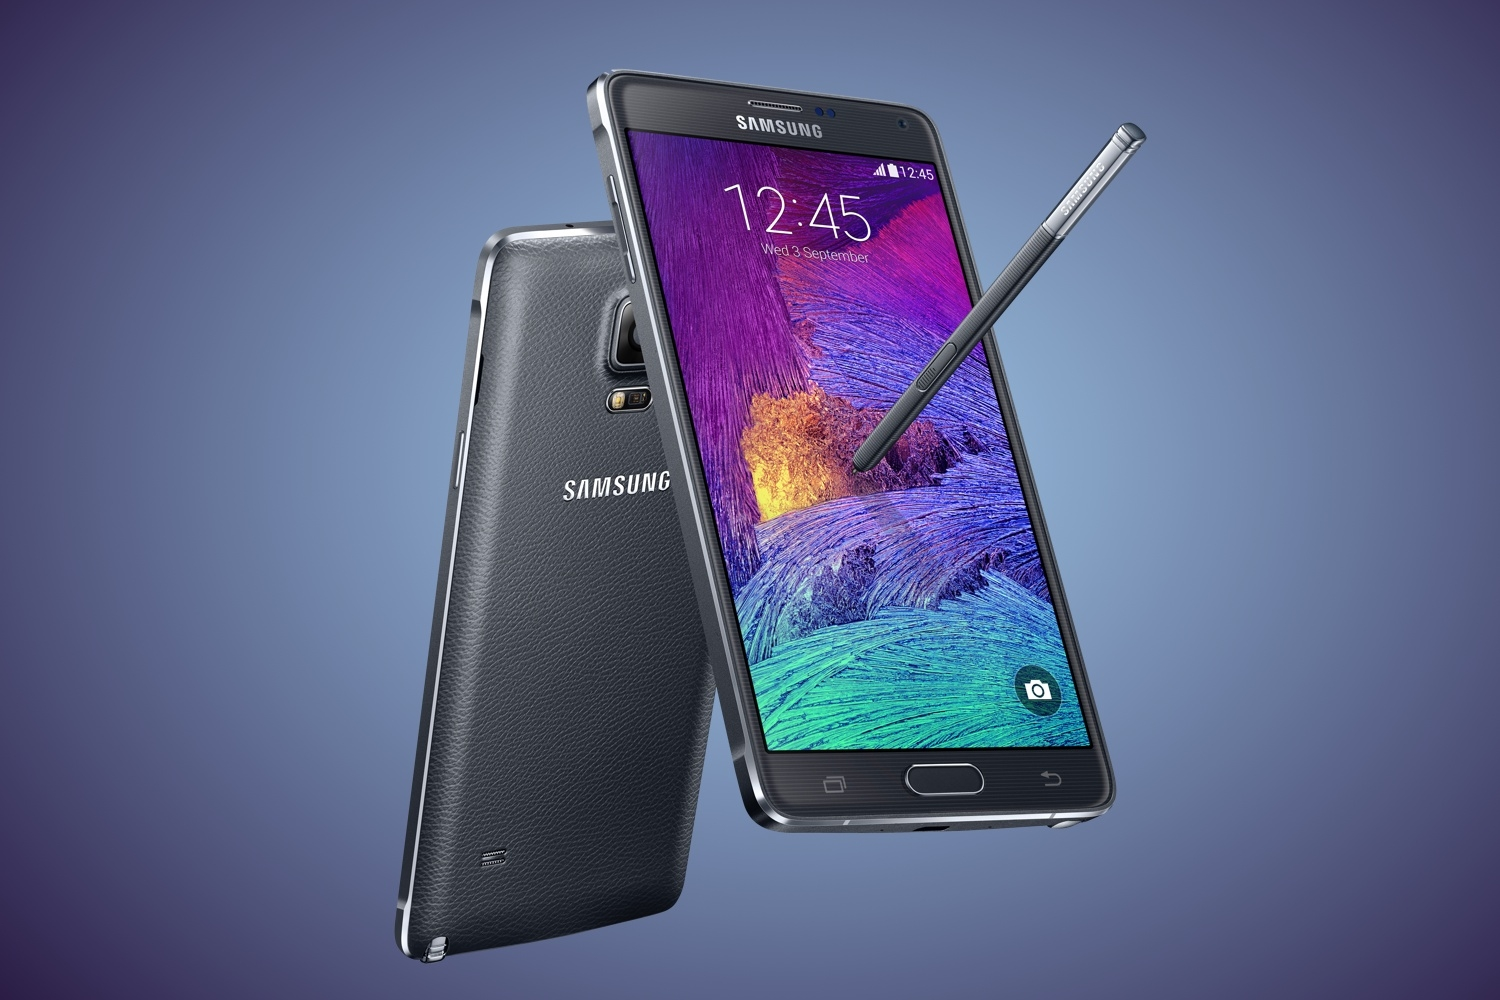 Galaxy Note 4: A Powerful, Beautiful Phone